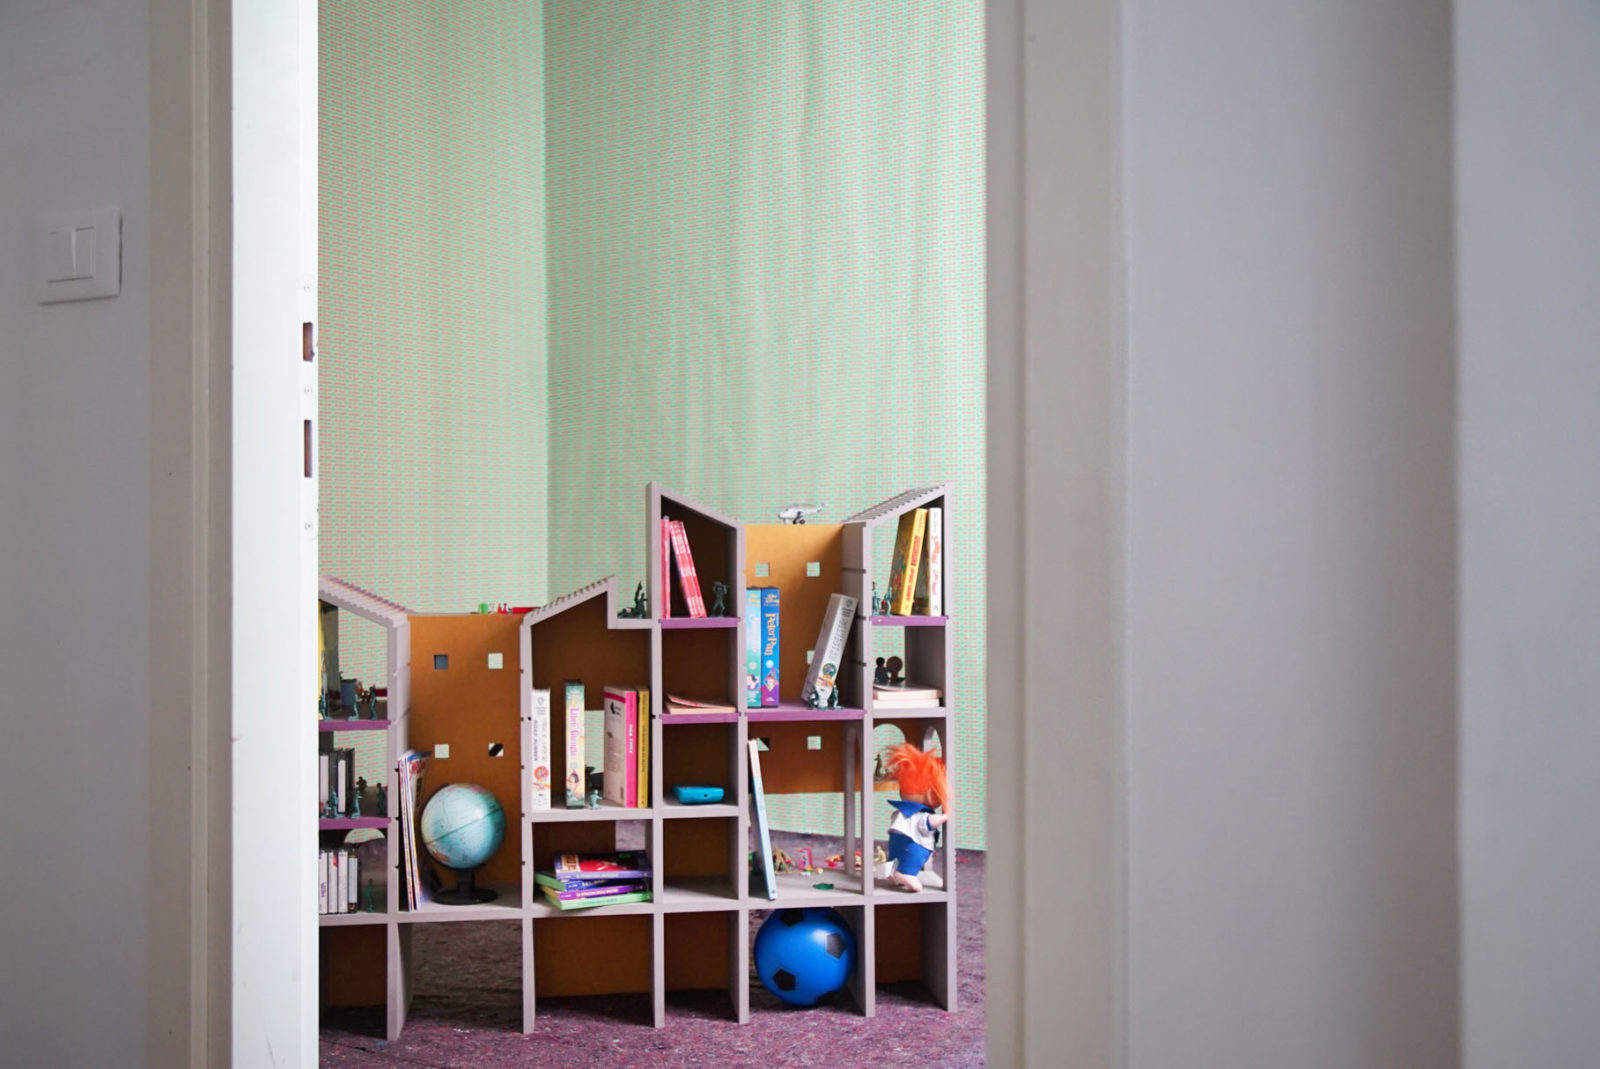 52_The Kids Room atelier XYZ